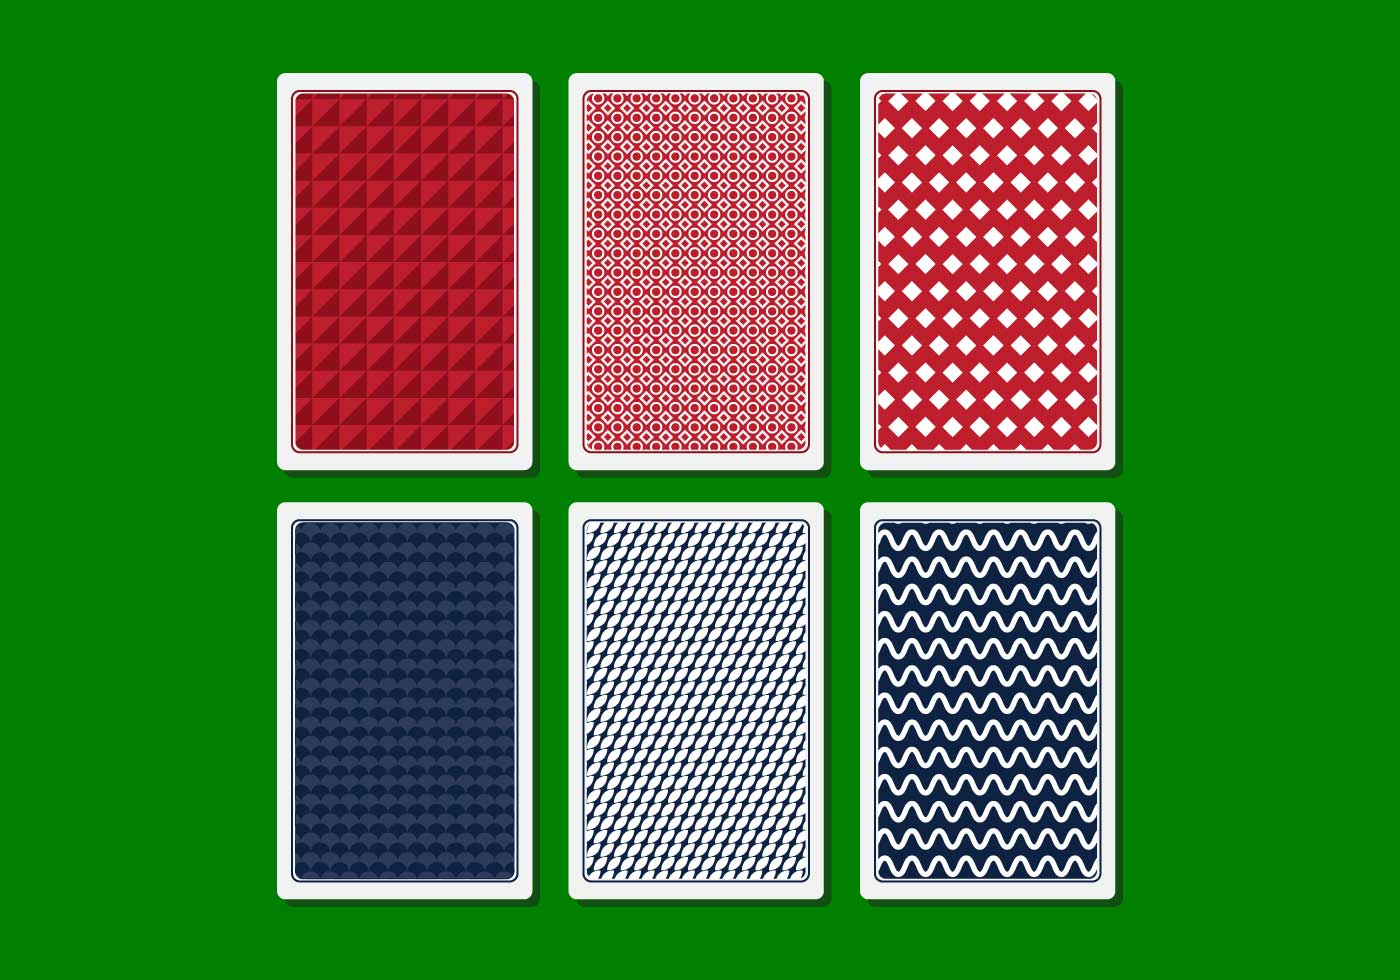 Vector Playing Card Back - Download Free Vector Art, Stock Graphics ...